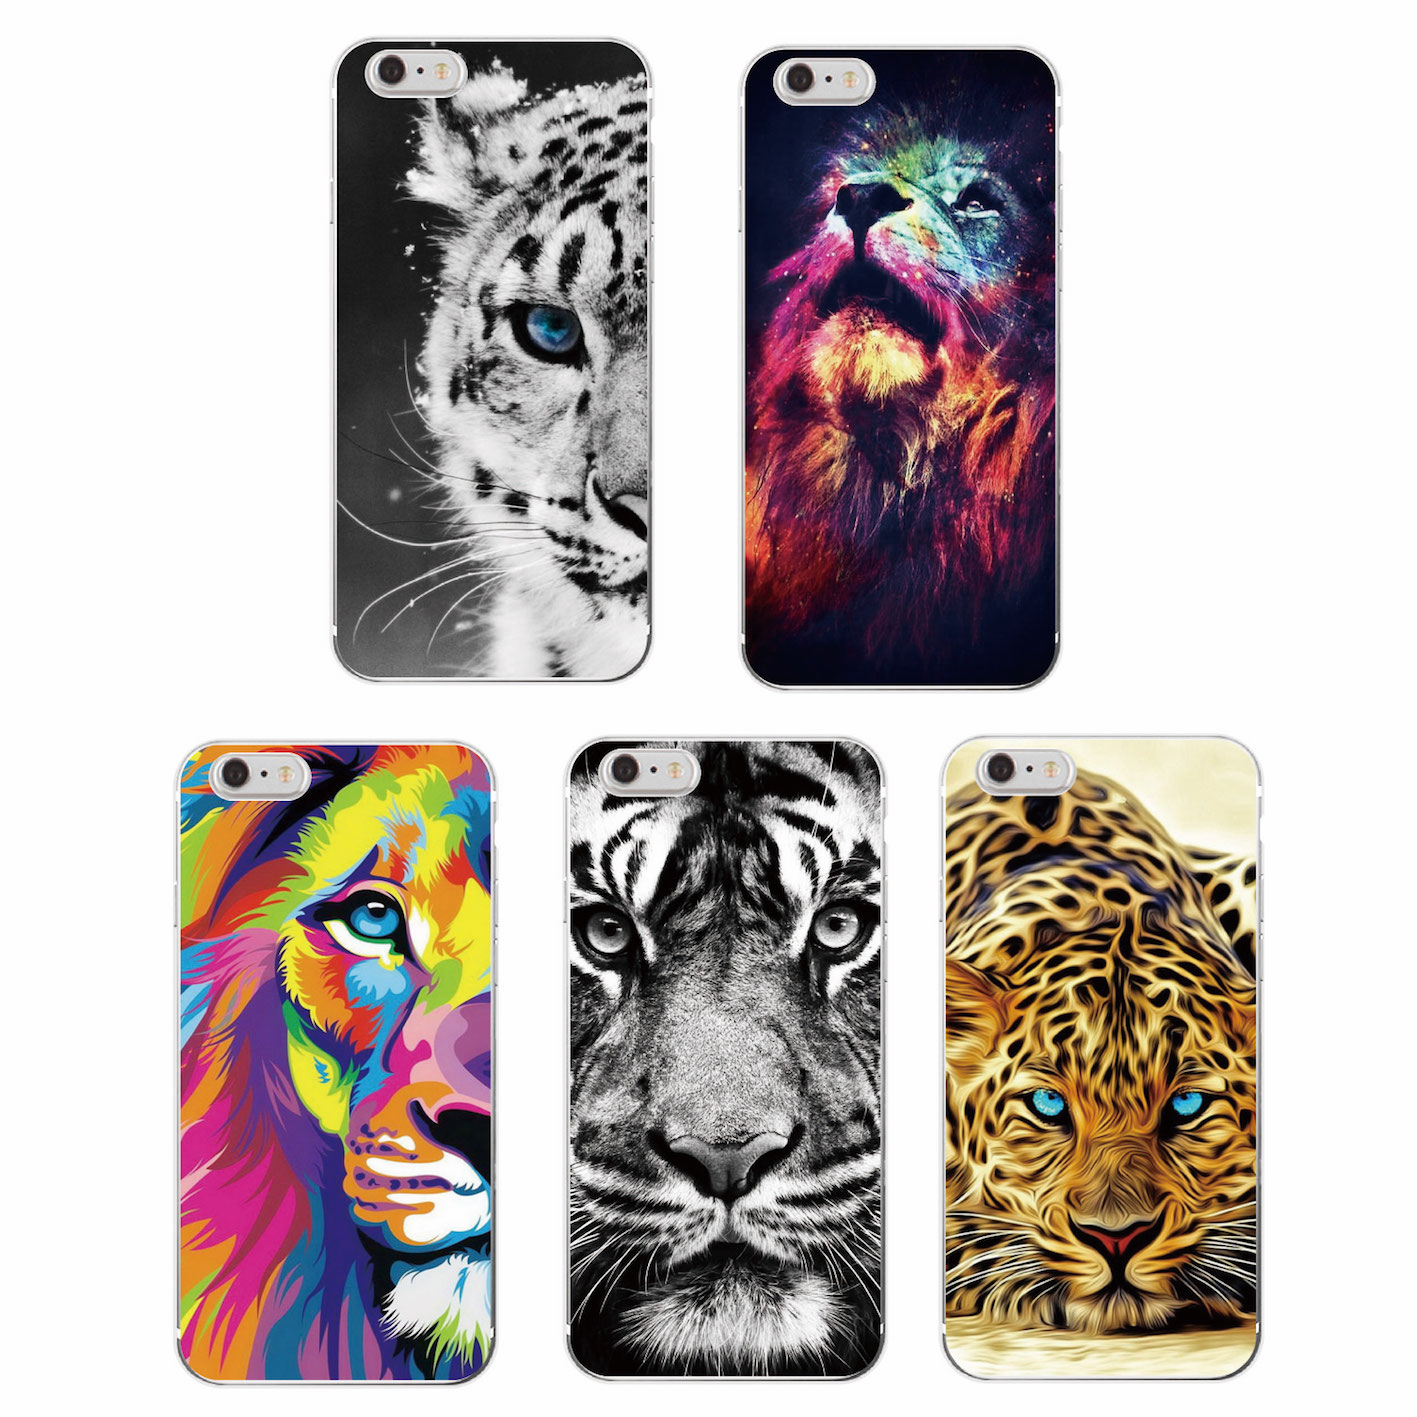 Fashion Lion Tiger panther Leopard Soft Case Coque Fundas para iPhone 11 7 7Plus 6 6S 5S 8 8Plus X XS Max SAMSUNG GALSXY S8 S8P